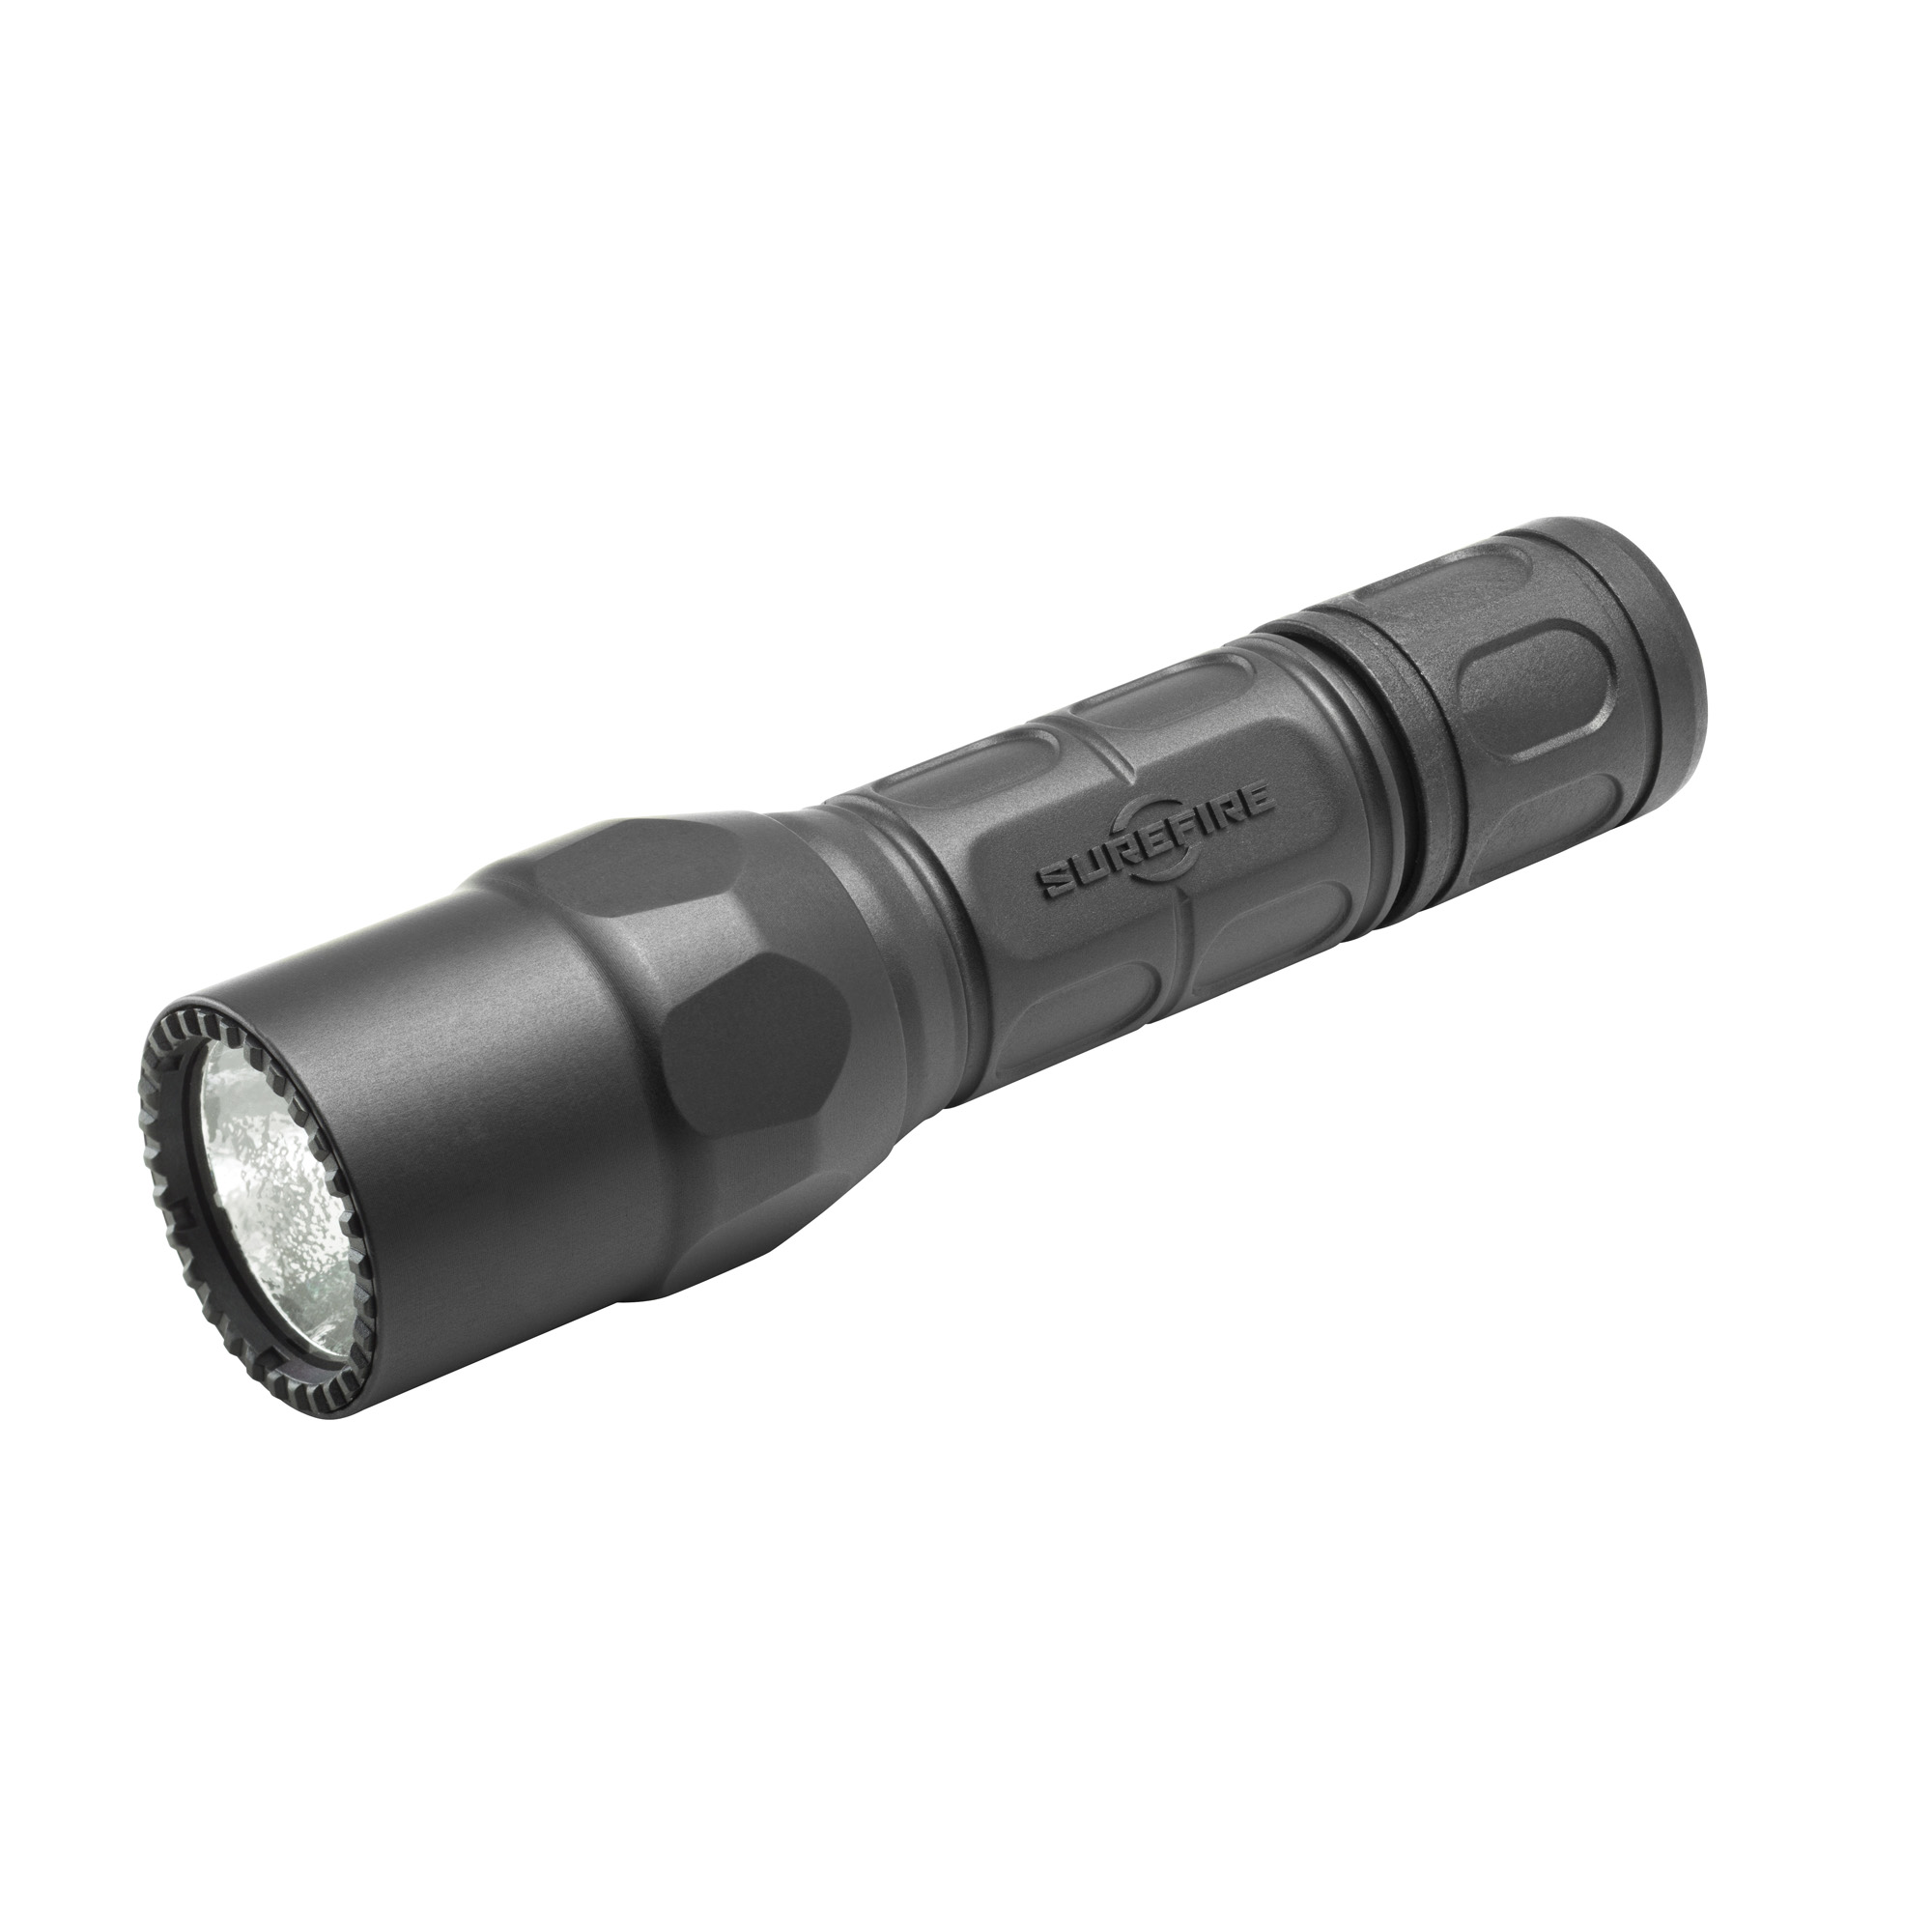 """The G2X Pro is a compact yet powerful polymer-body flashlight that uses a high-efficiency LED-virtually immune to failure since there's no filament to burn out or break-to provide two light output levels: a brilliant"""" penetrating"""" perfectly pre-focused 320-lumen beam"""" and a 15-lumen low-output setting that lets you greatly extend the runtime per set of batteries"""" an invaluable option when you find yourself miles from civilization. Press the tail cap switch for momentary-on low"""" press further to click constant-on low"""" return to off and press or click on again within two seconds for high. The tough Nitrolon(R) polymer body is smoothly sculpted for a comfortable"""" secure grip and resists scratches"""" abrasion"""" and corrosion. A polycarbonate micro-textured reflector delivers a comparatively wider beam with generous peripheral light."""